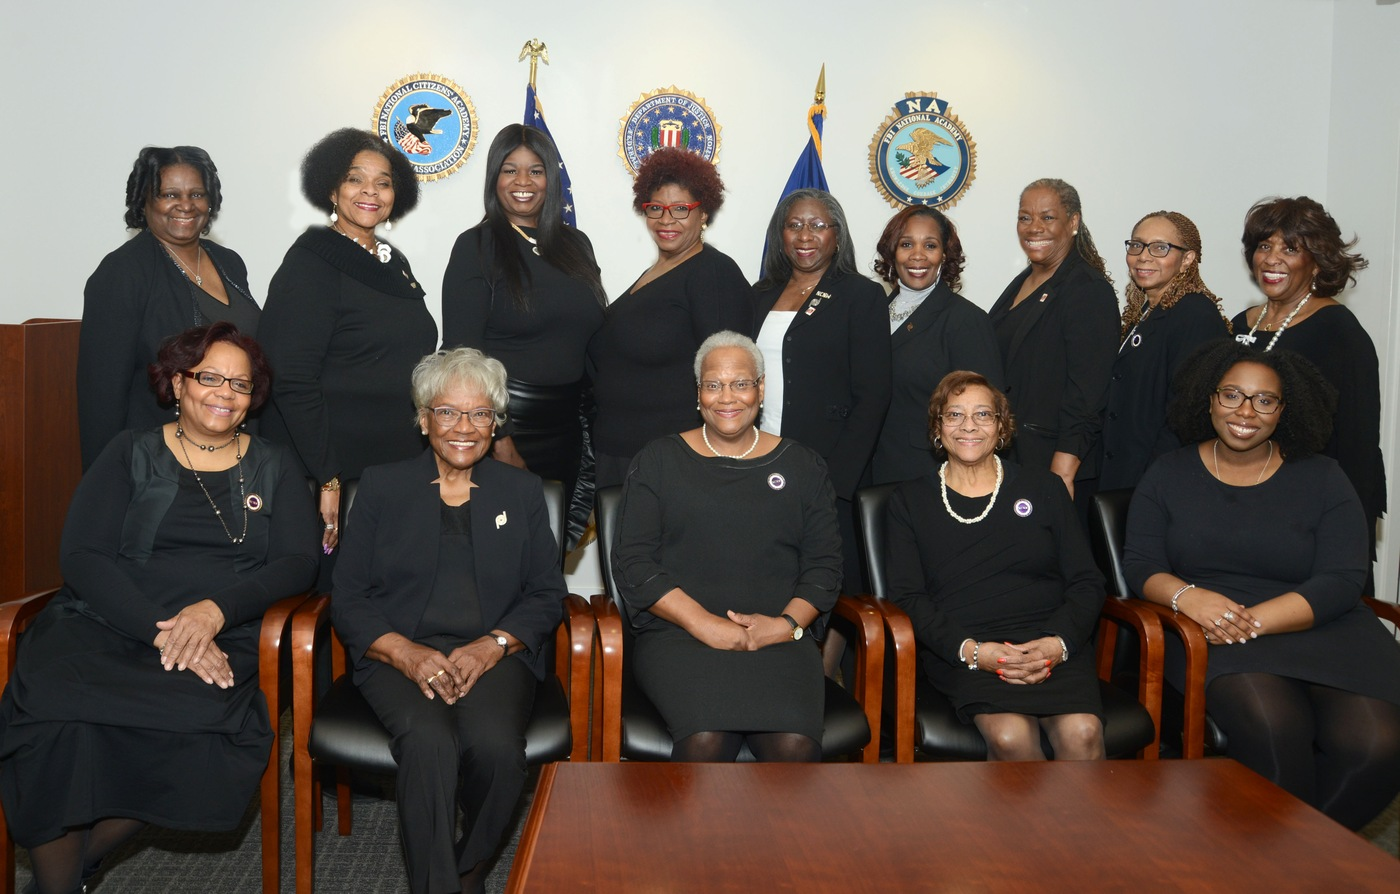 FBI 2019 Director's Community Leadership Award recipient, the National Council of Negro Women, Detroit Section.